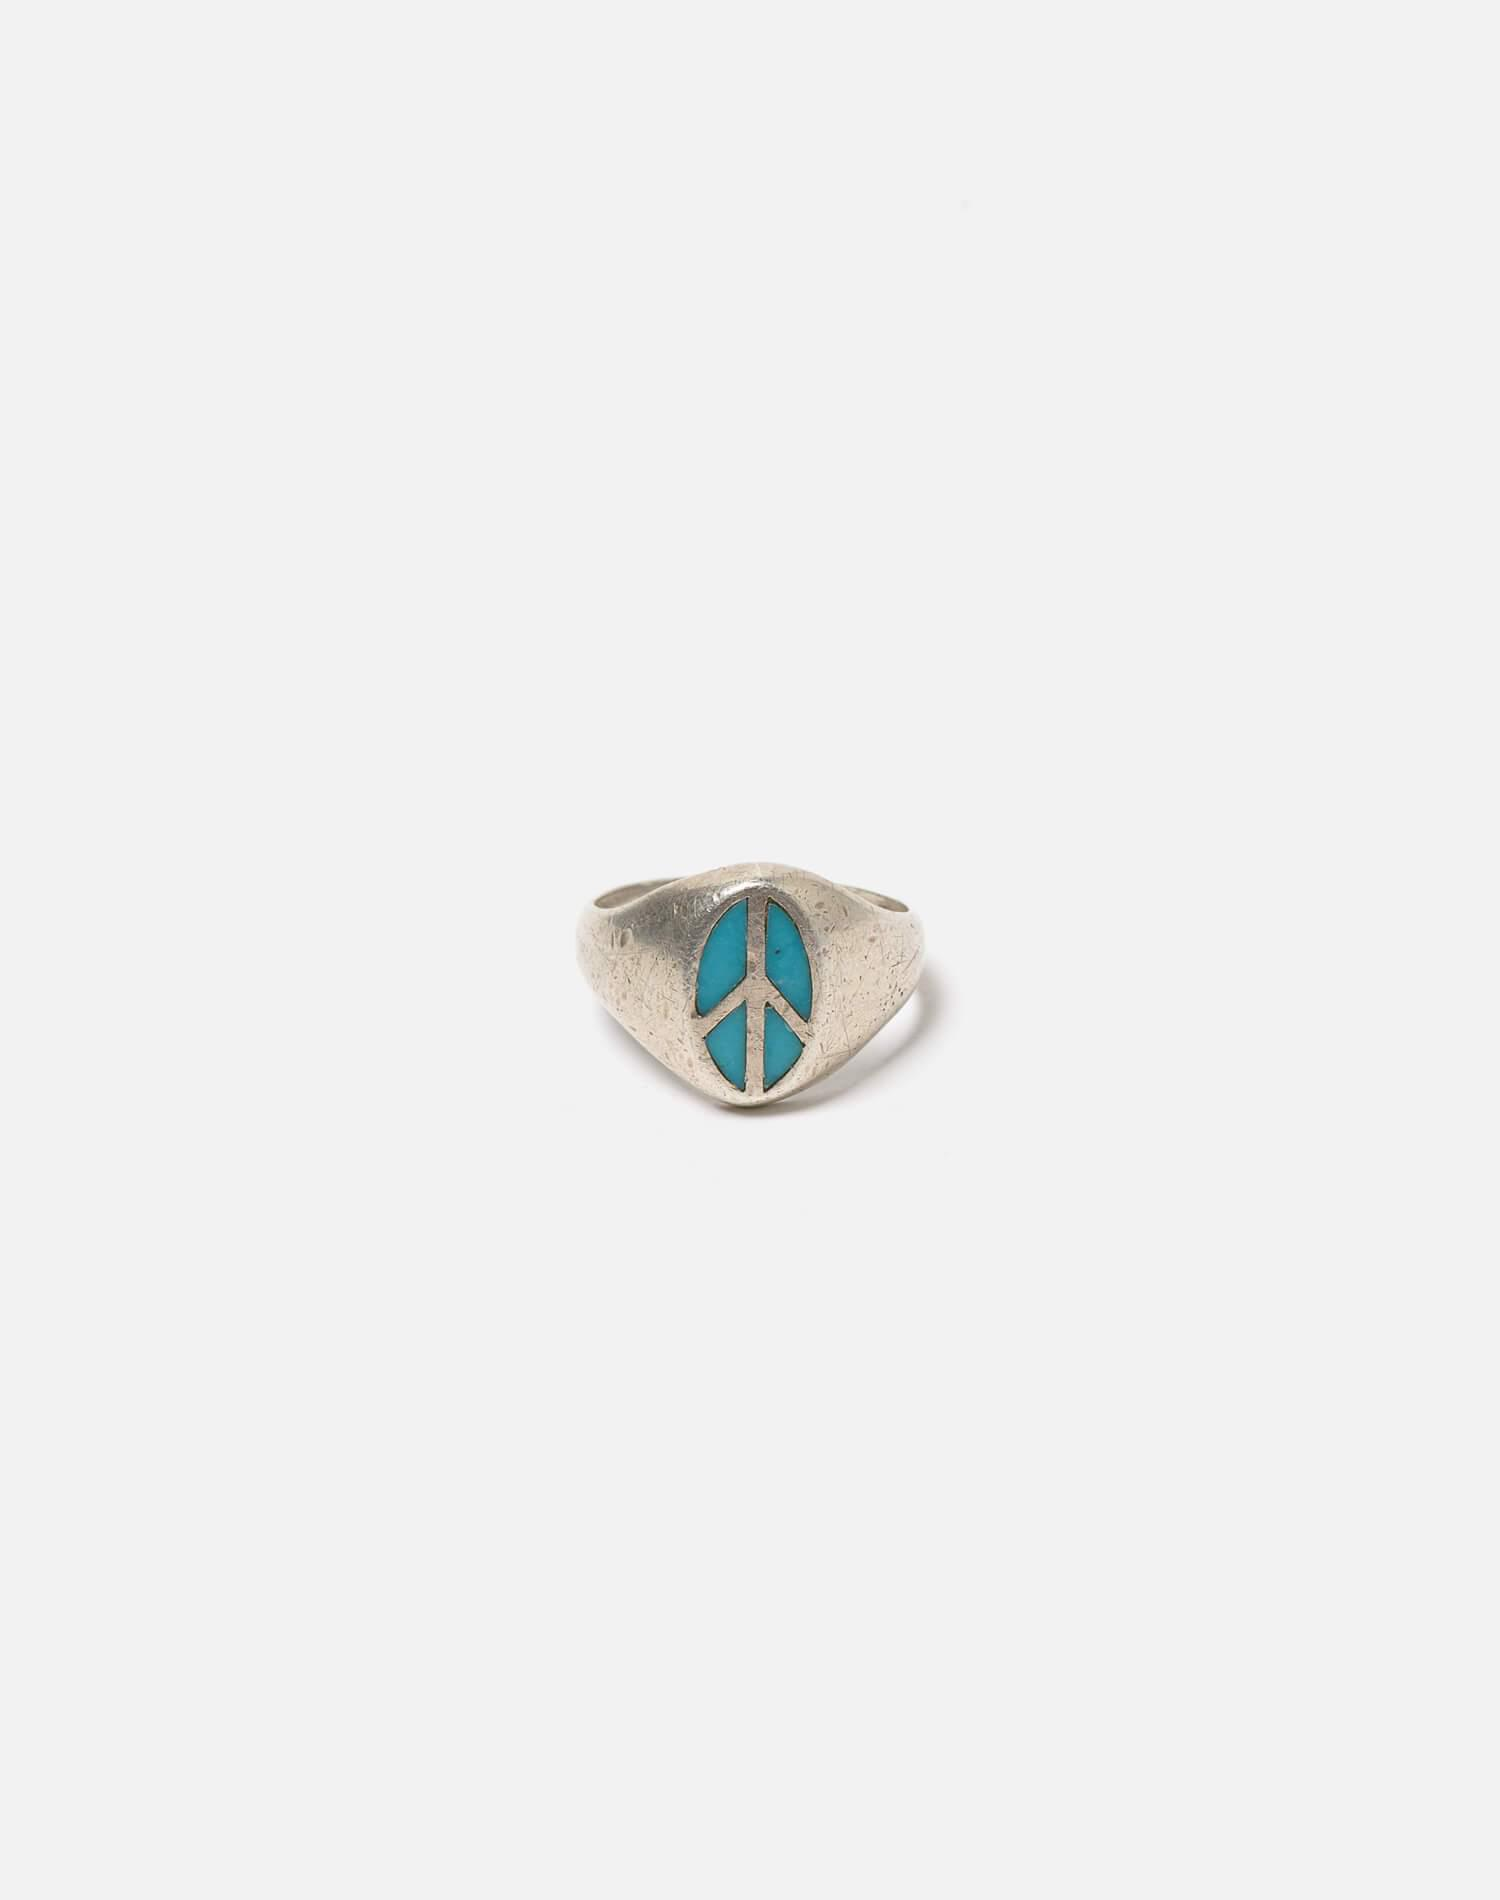 1960s Mexican Sterling Inlaid Turquoise Peace Sign Ring - #101 0